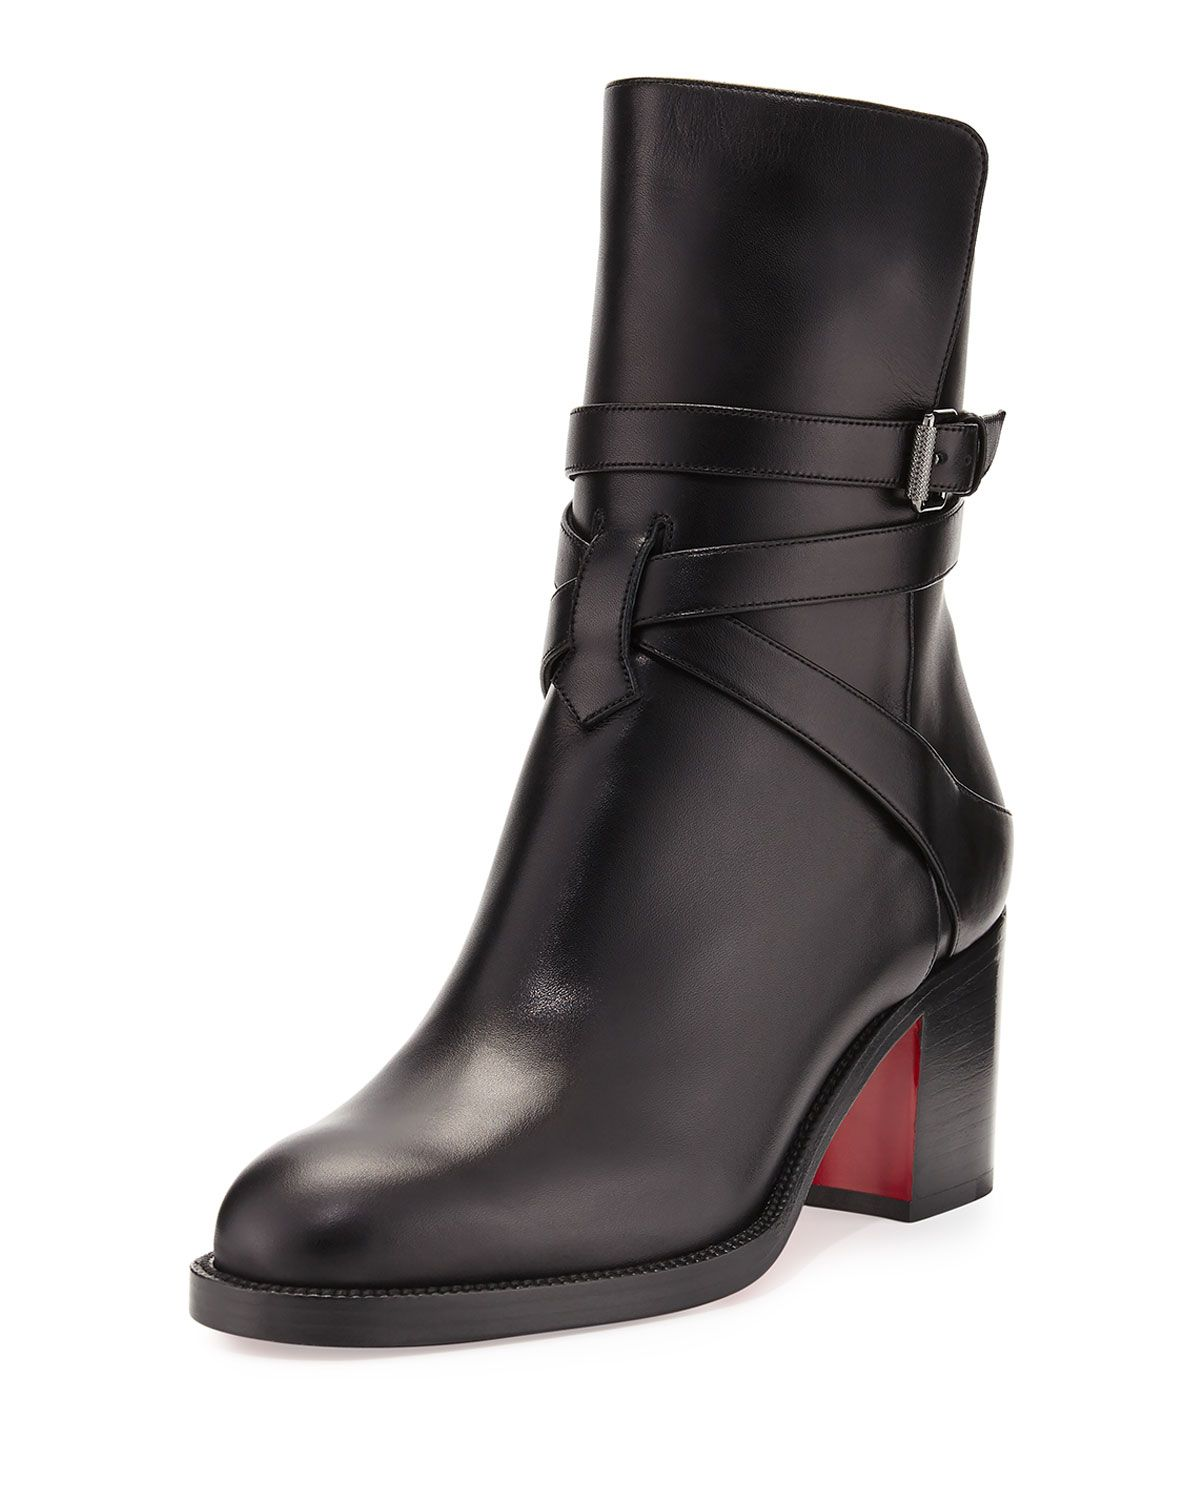 best service 4eeb6 be914 Christian Louboutin Karistrap Leather 70mm Red Sole Ankle ...